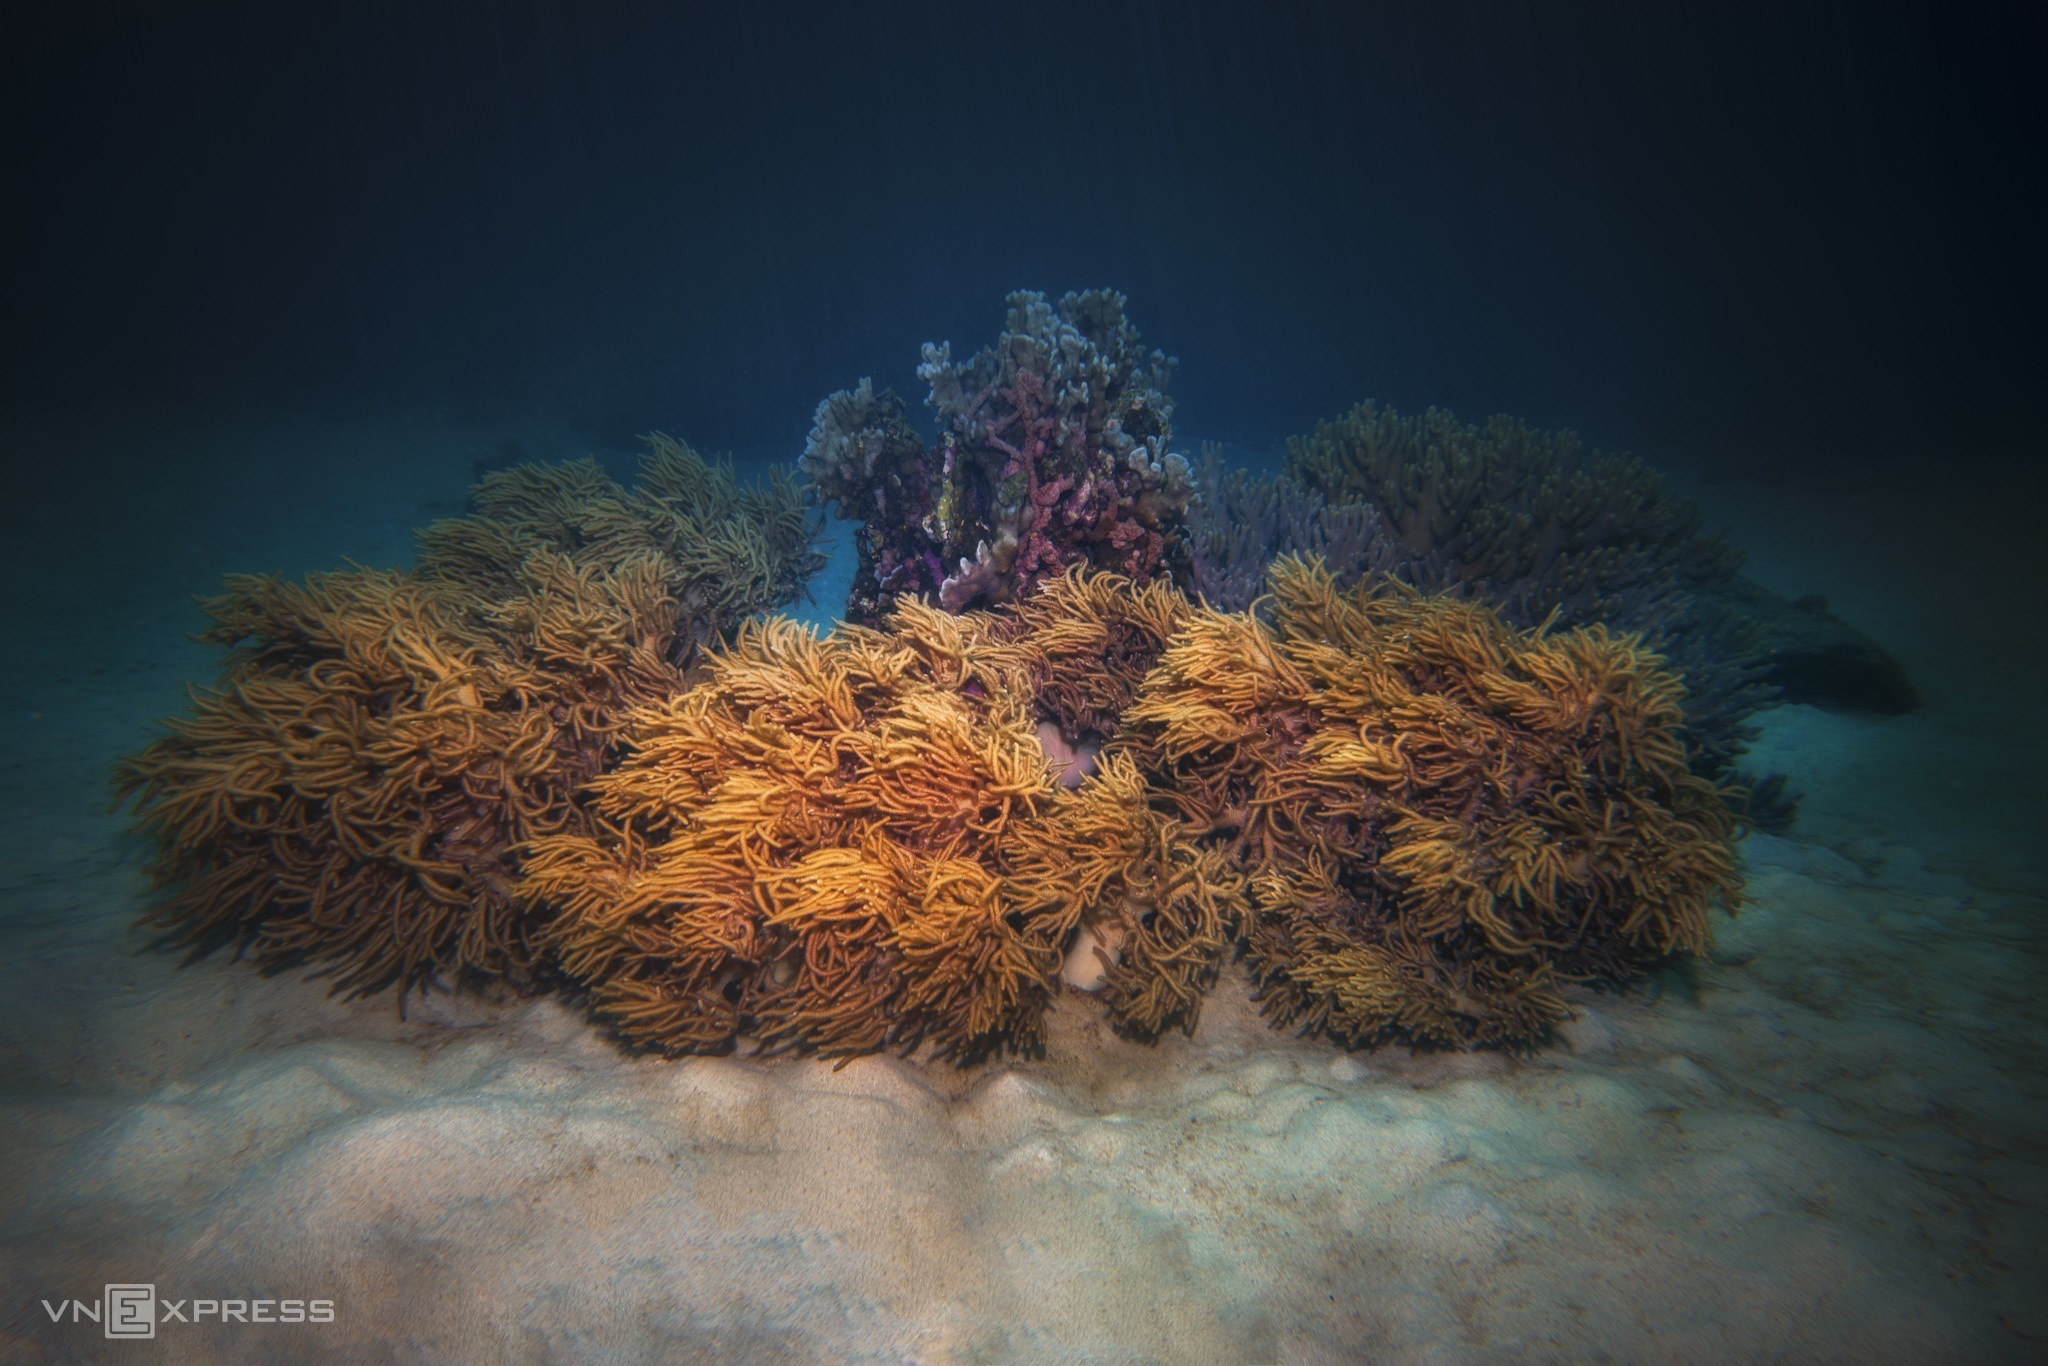 Diving tour explores protected Nha Trang seabed